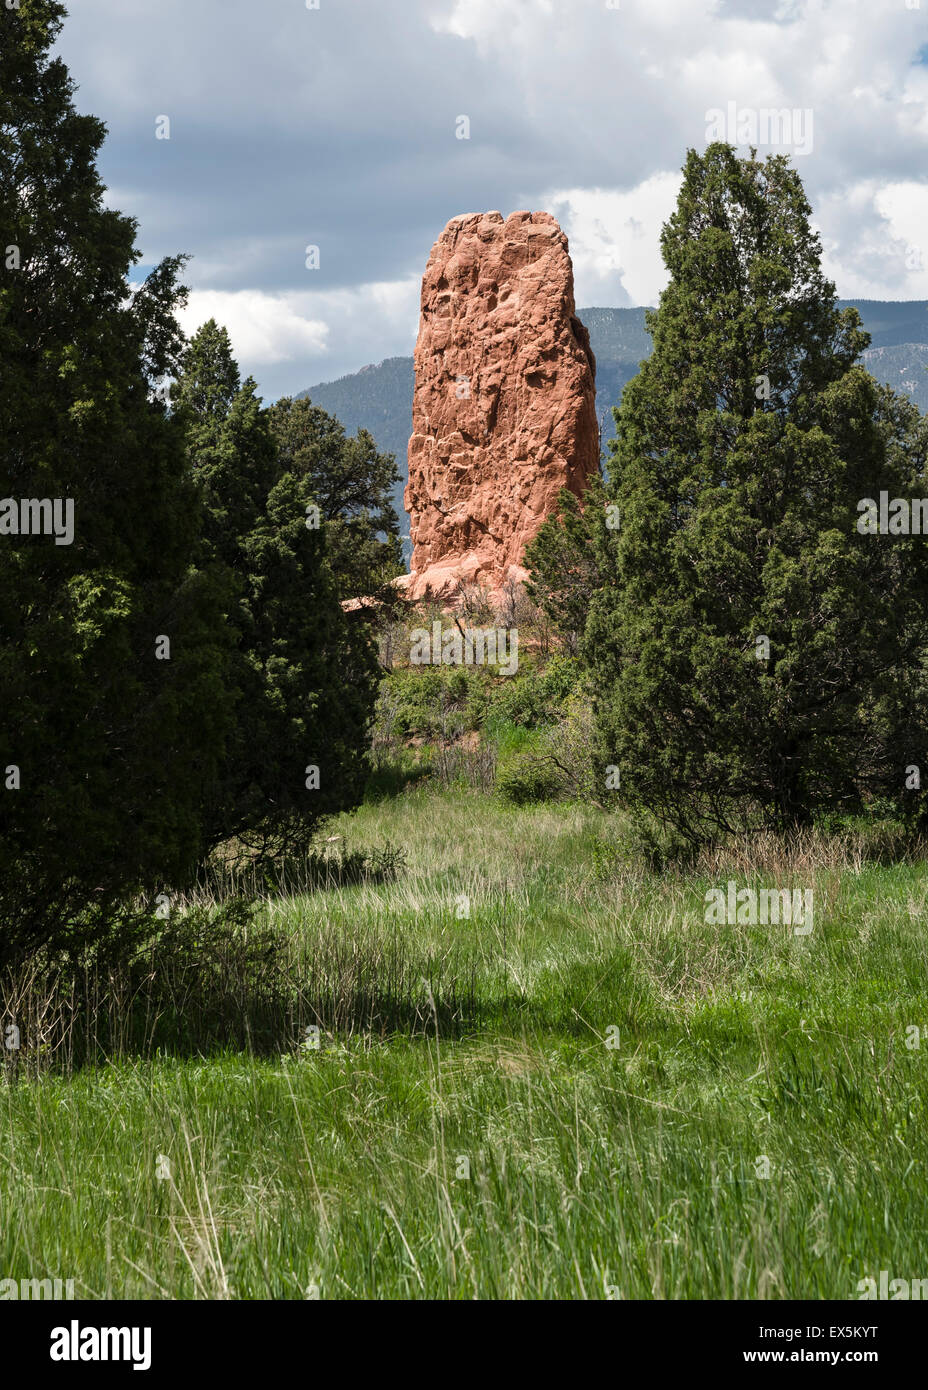 A red stone column surrounded by green trees, Garden of the Gods, Colorado Springs, Colorado, USA, North America - Stock Image